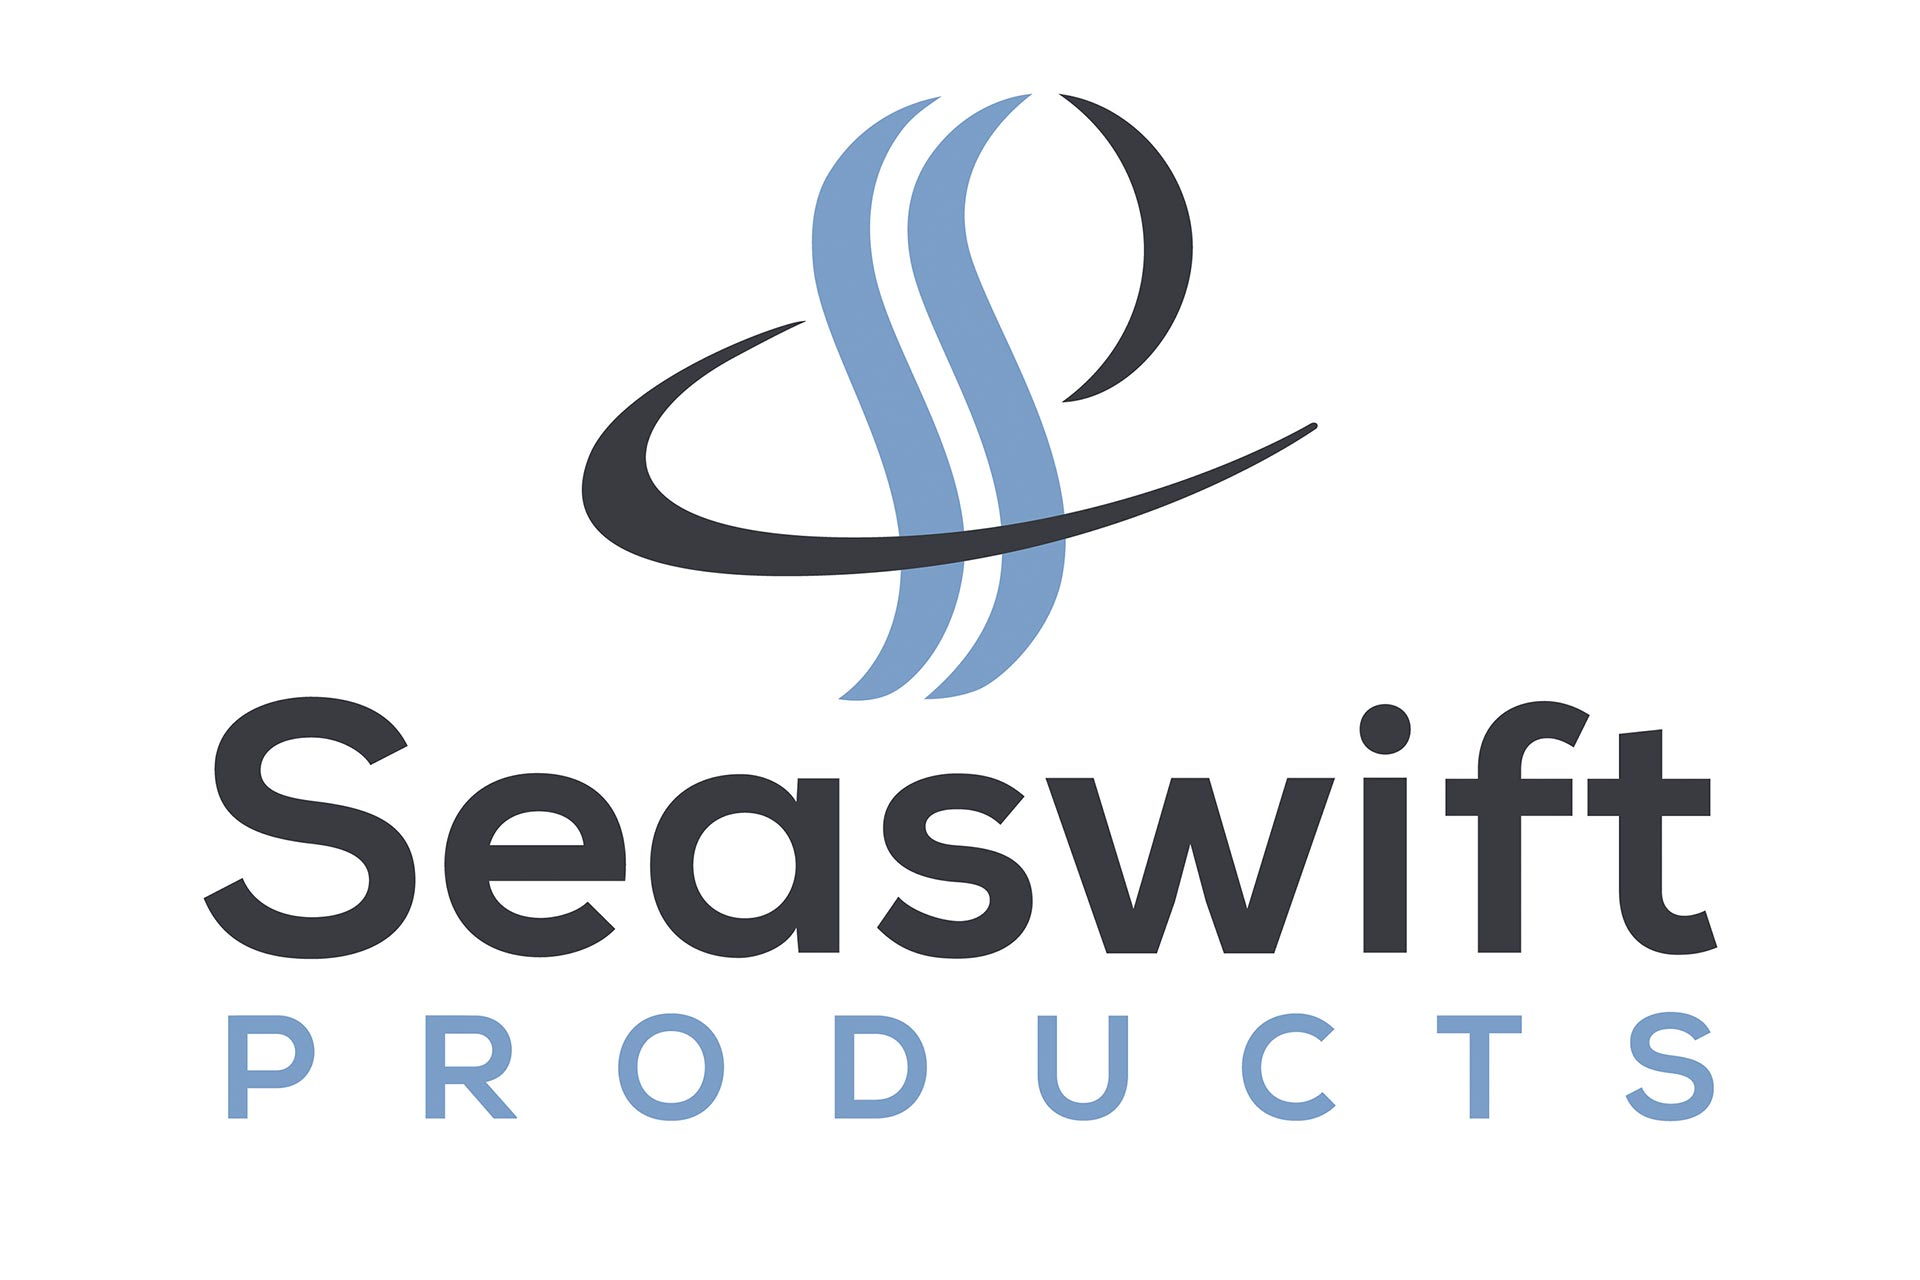 seaswift 1920 opt